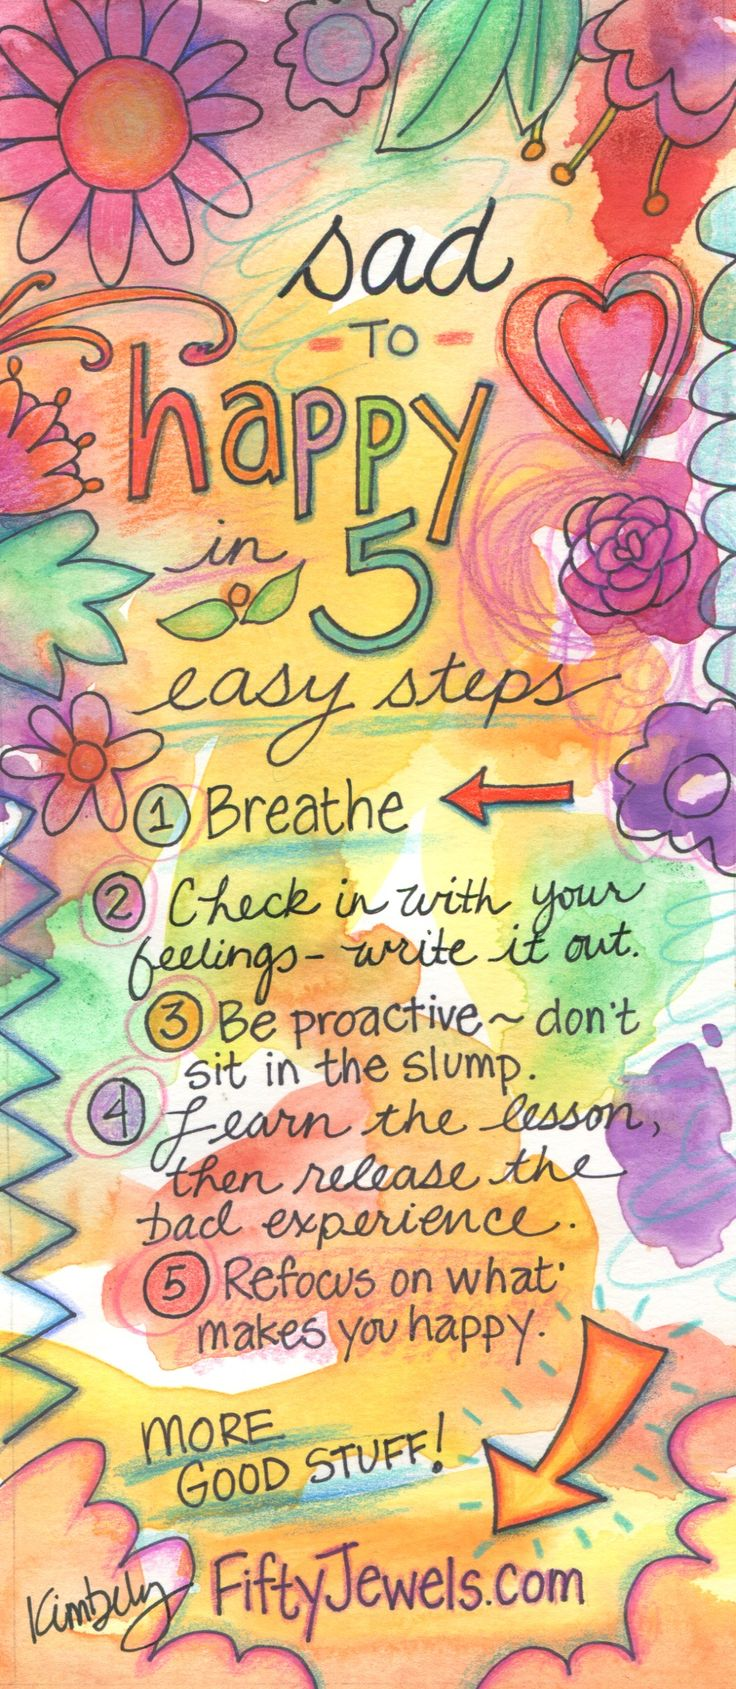 Use these quick tips to boost your mood and get back to your sunny, happy self! Pin for later & click to learn more great action steps!  http://FiftyJewels.com #gratitude #happiness #grateful